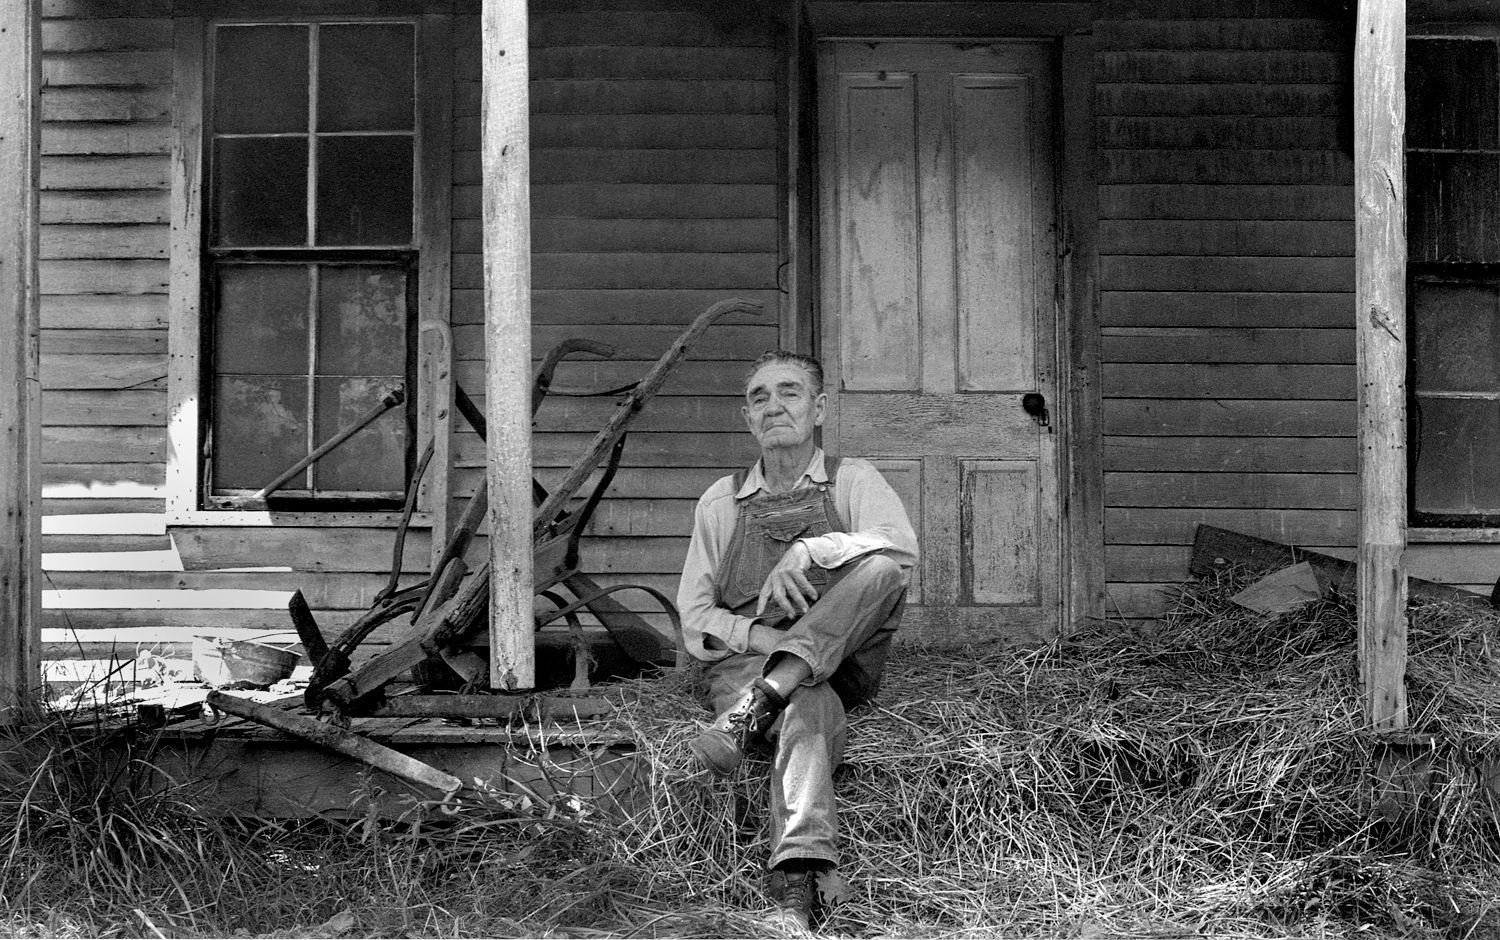 Farmer Sitting on Porch with hay and plow